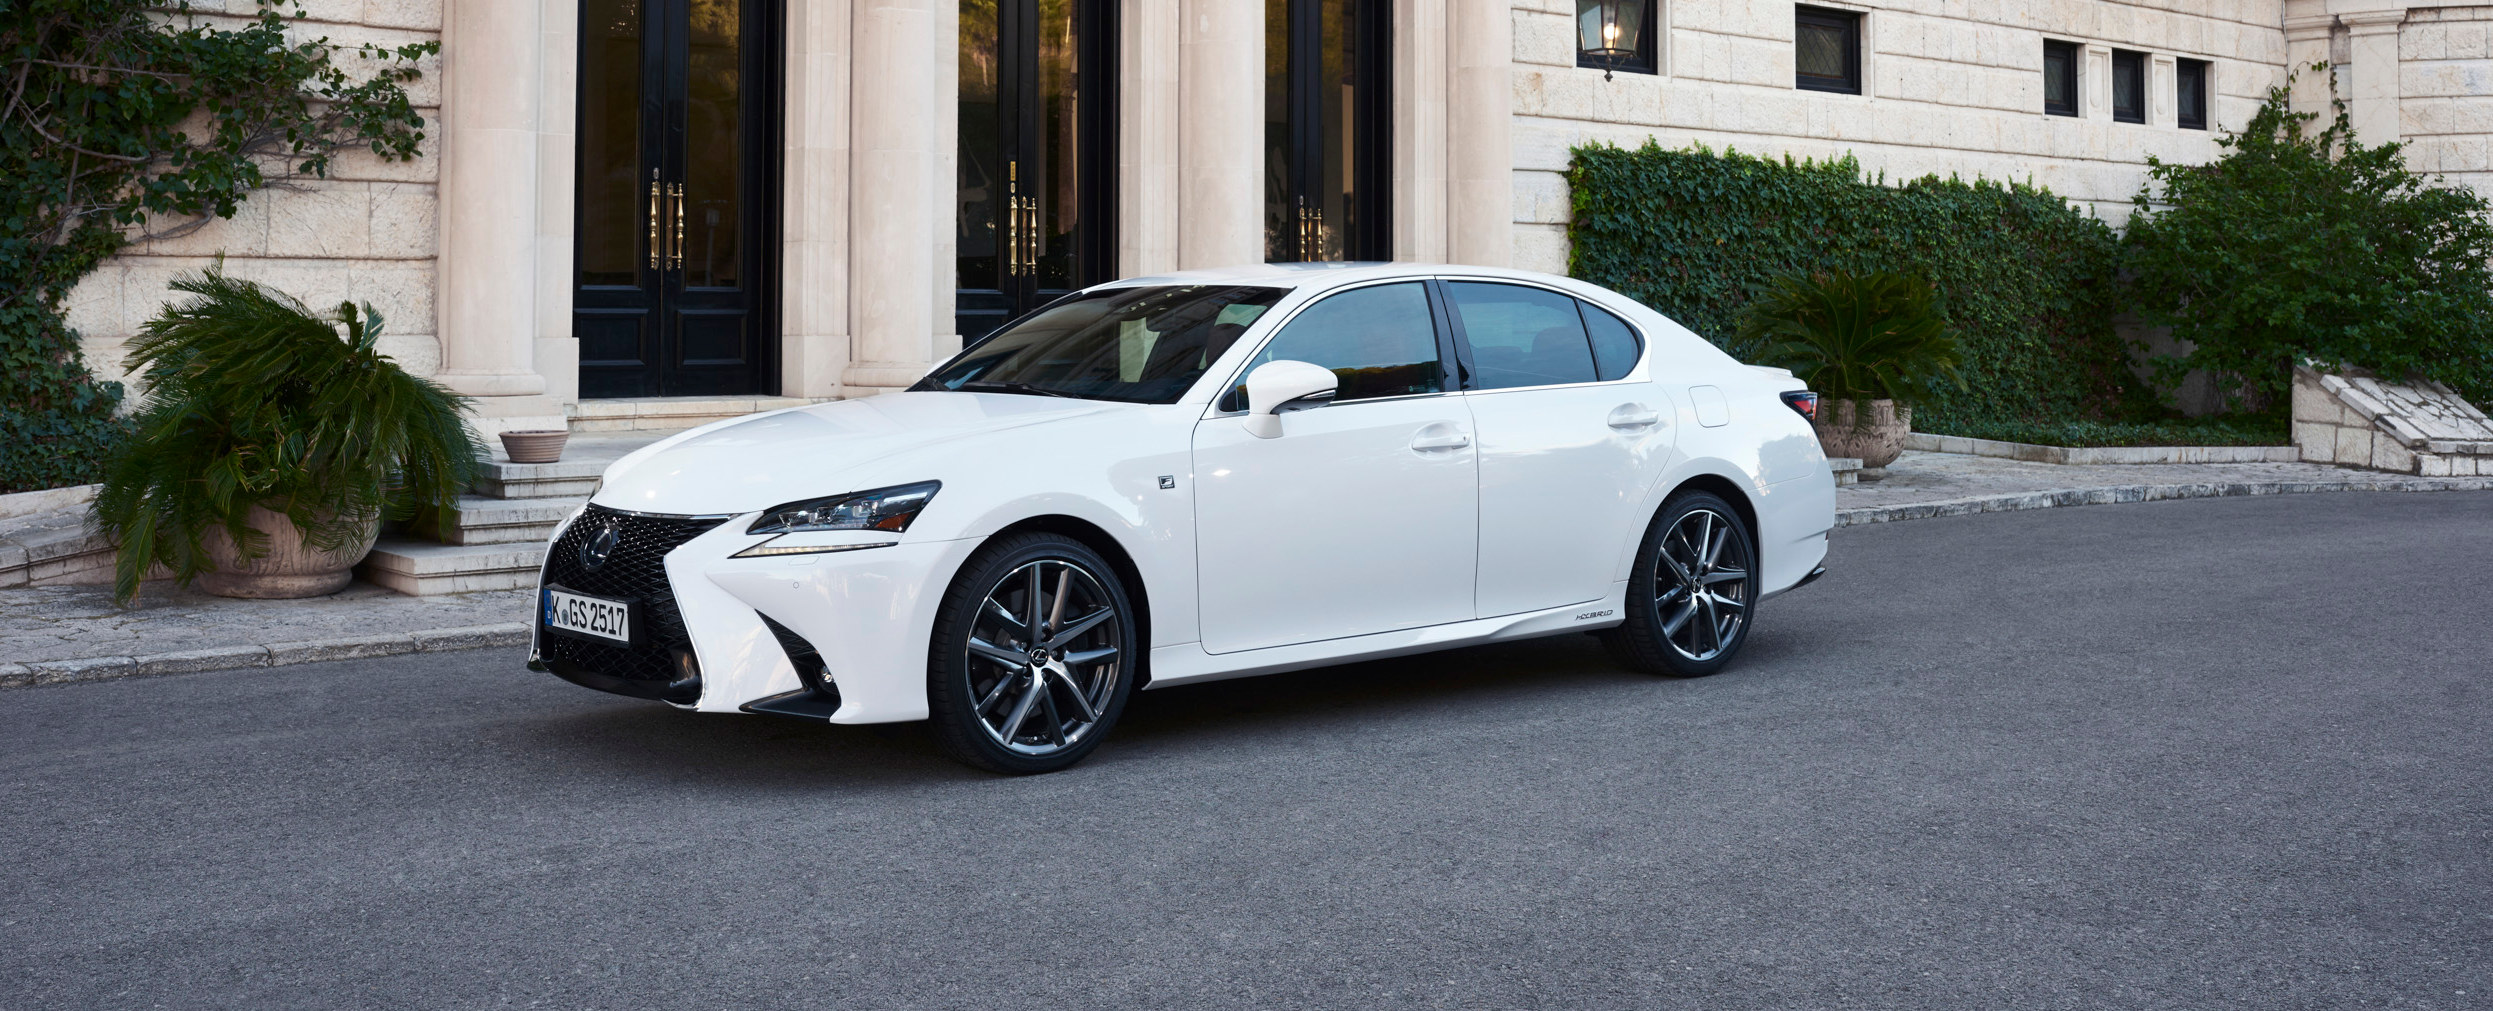 Lateral lexus gs